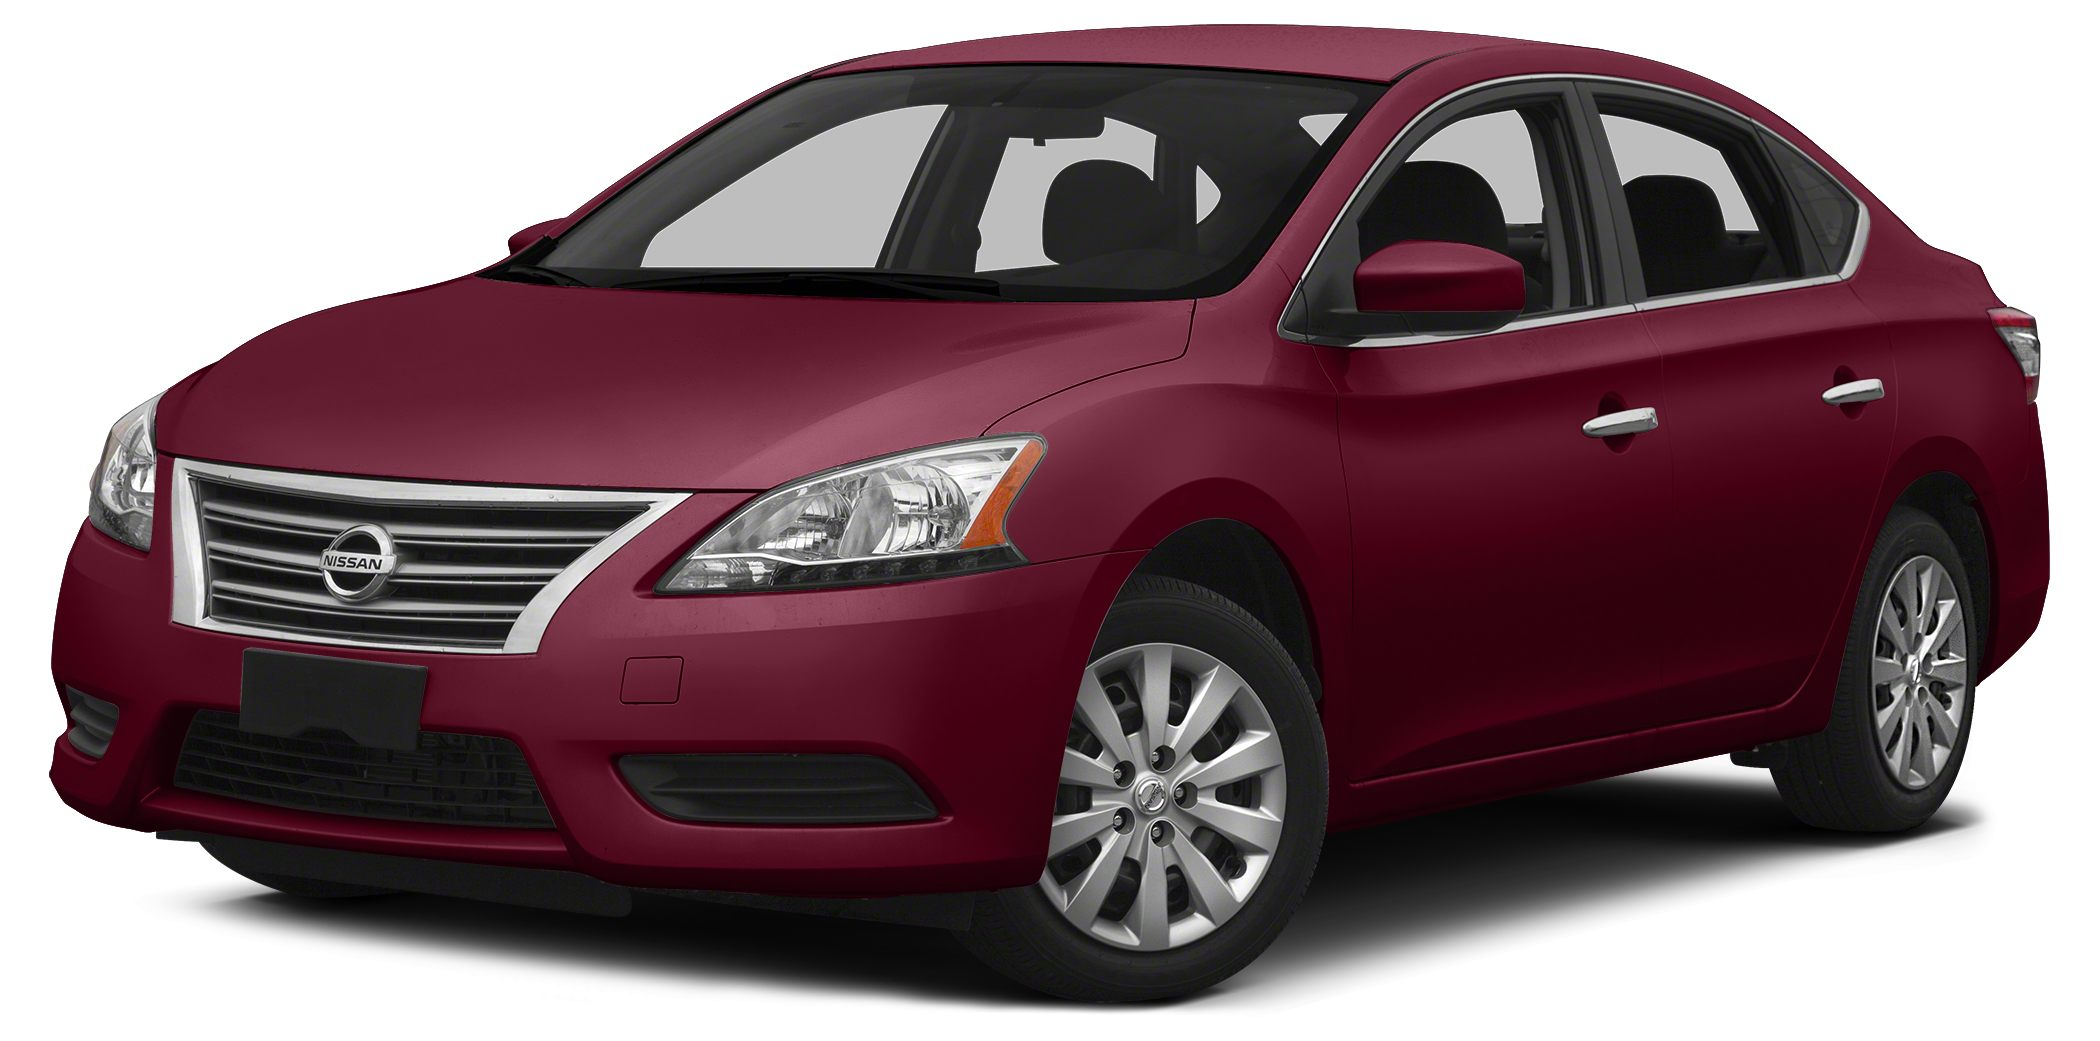 2014 Nissan Sentra S Your Miles 4031Color Red Stock 7149P VIN 3N1AB7AP9EL692114